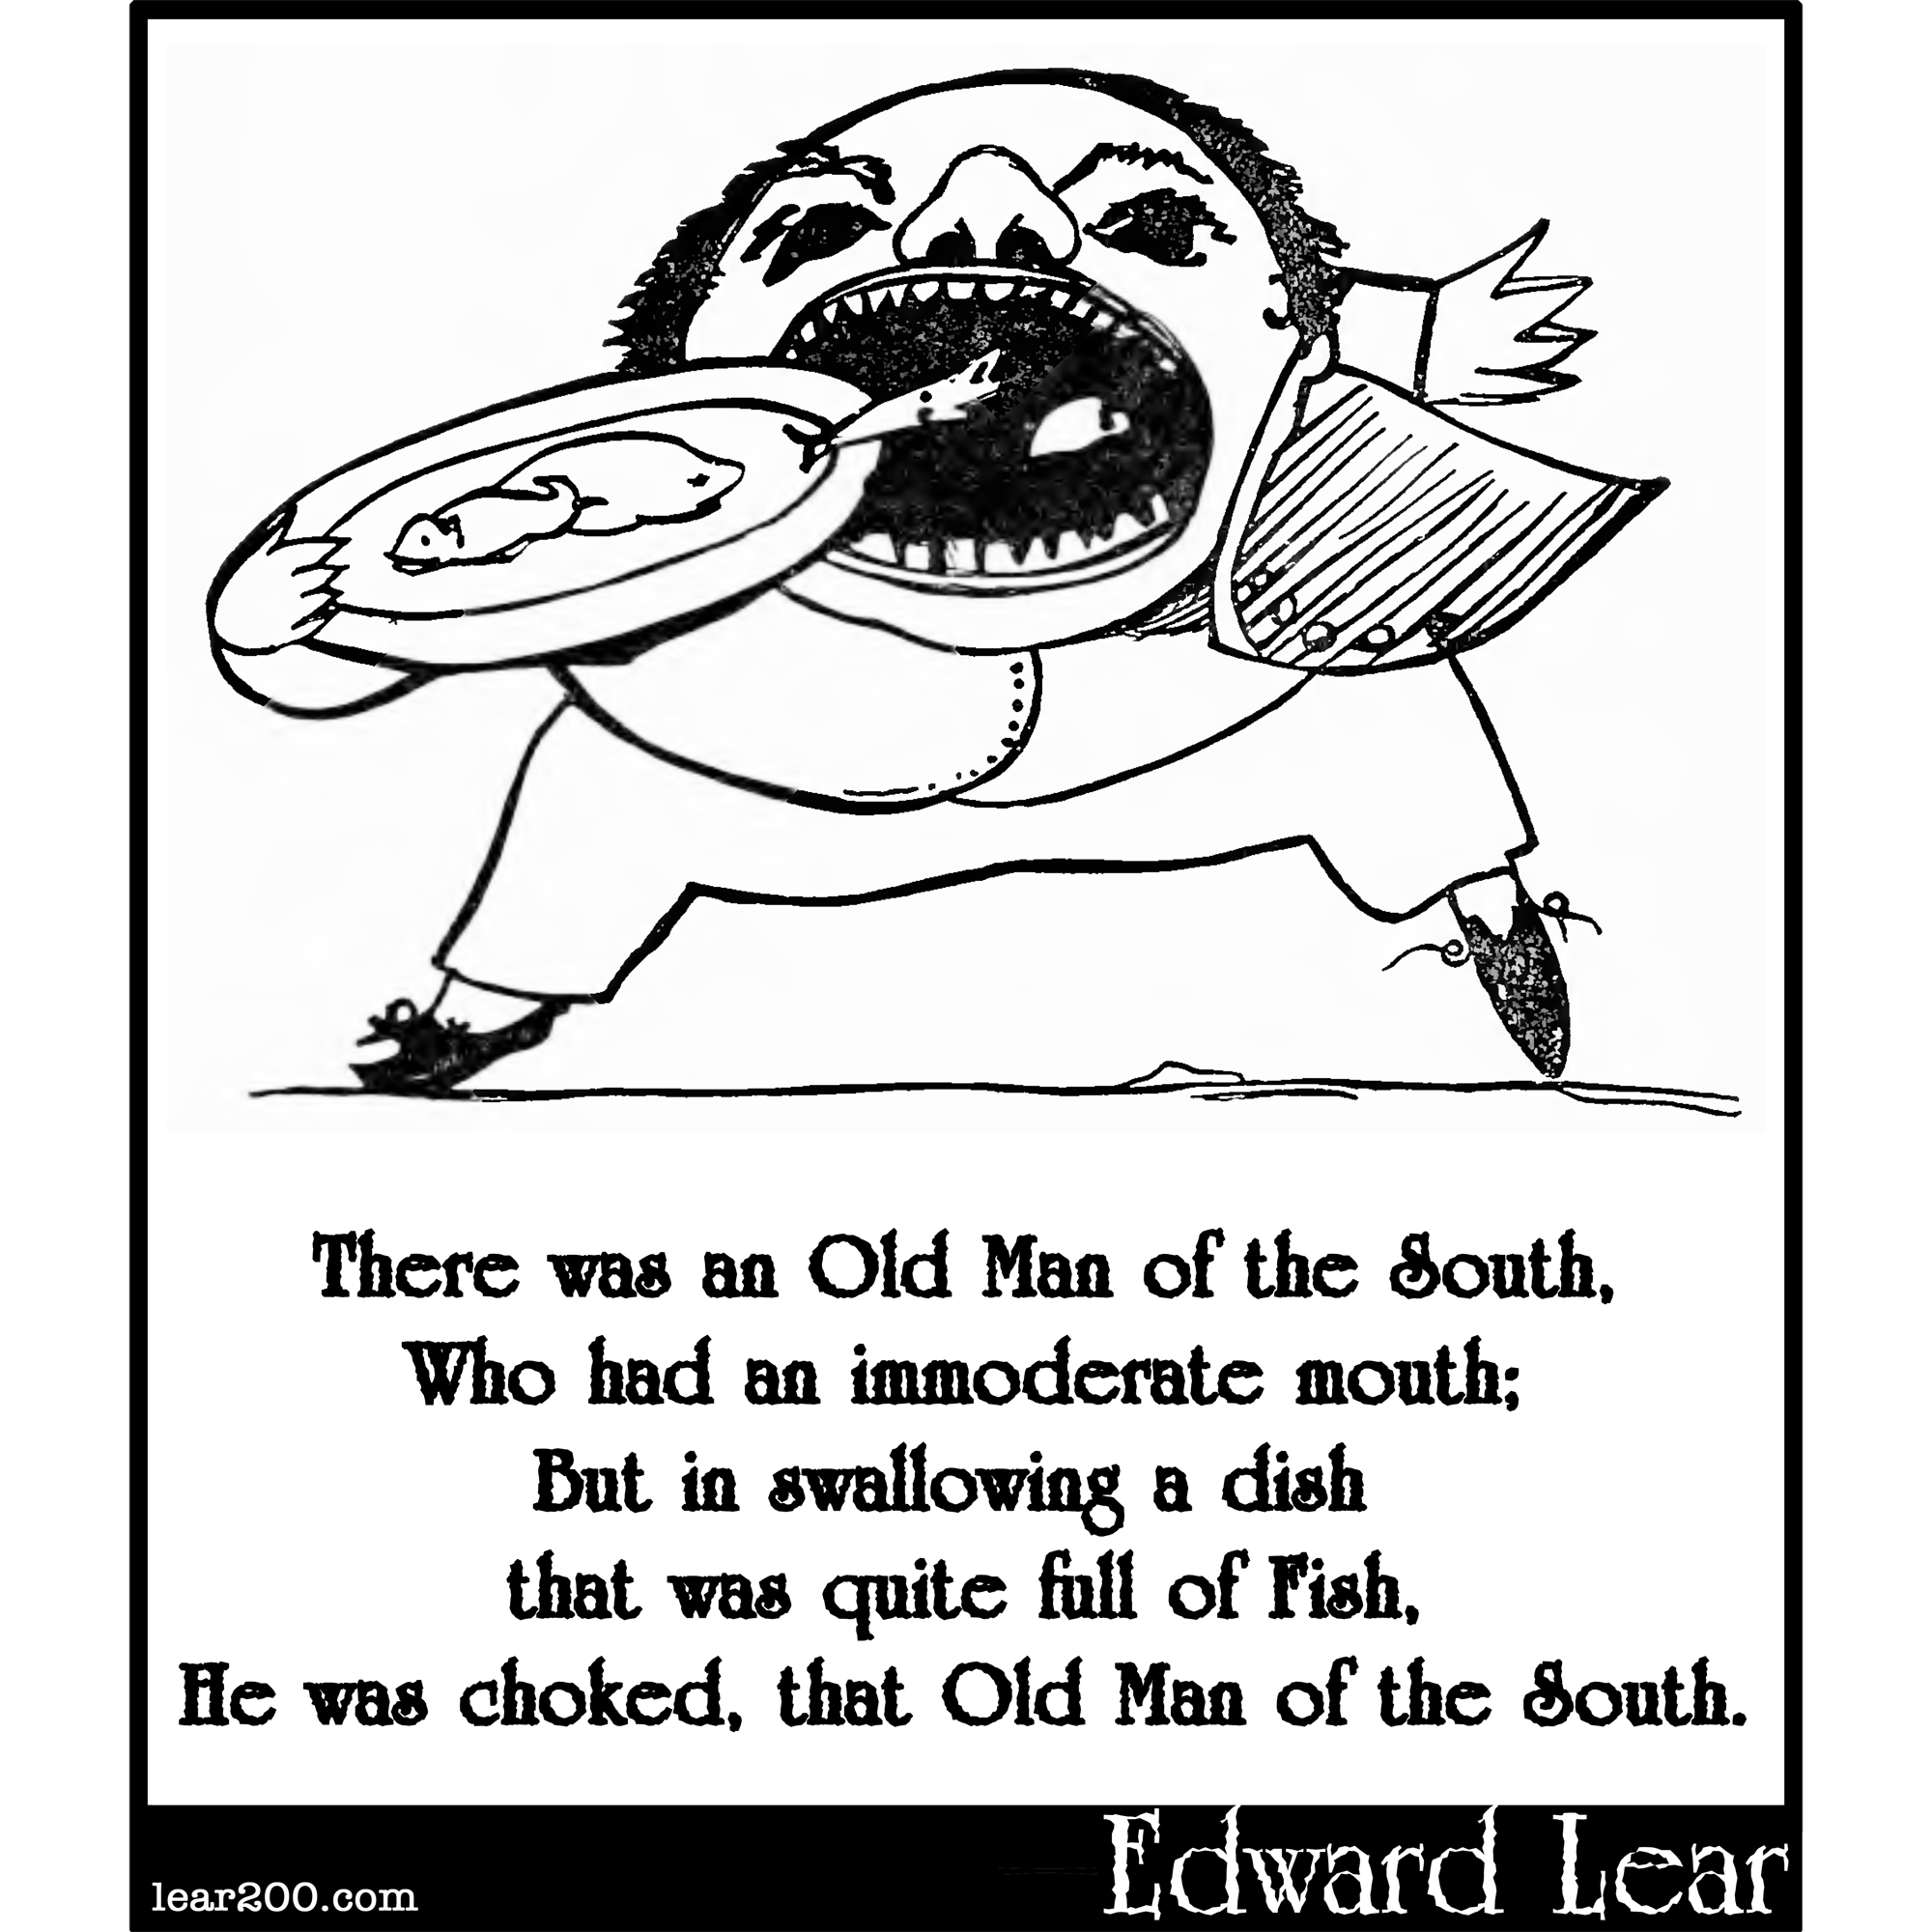 There was an Old Man of the South